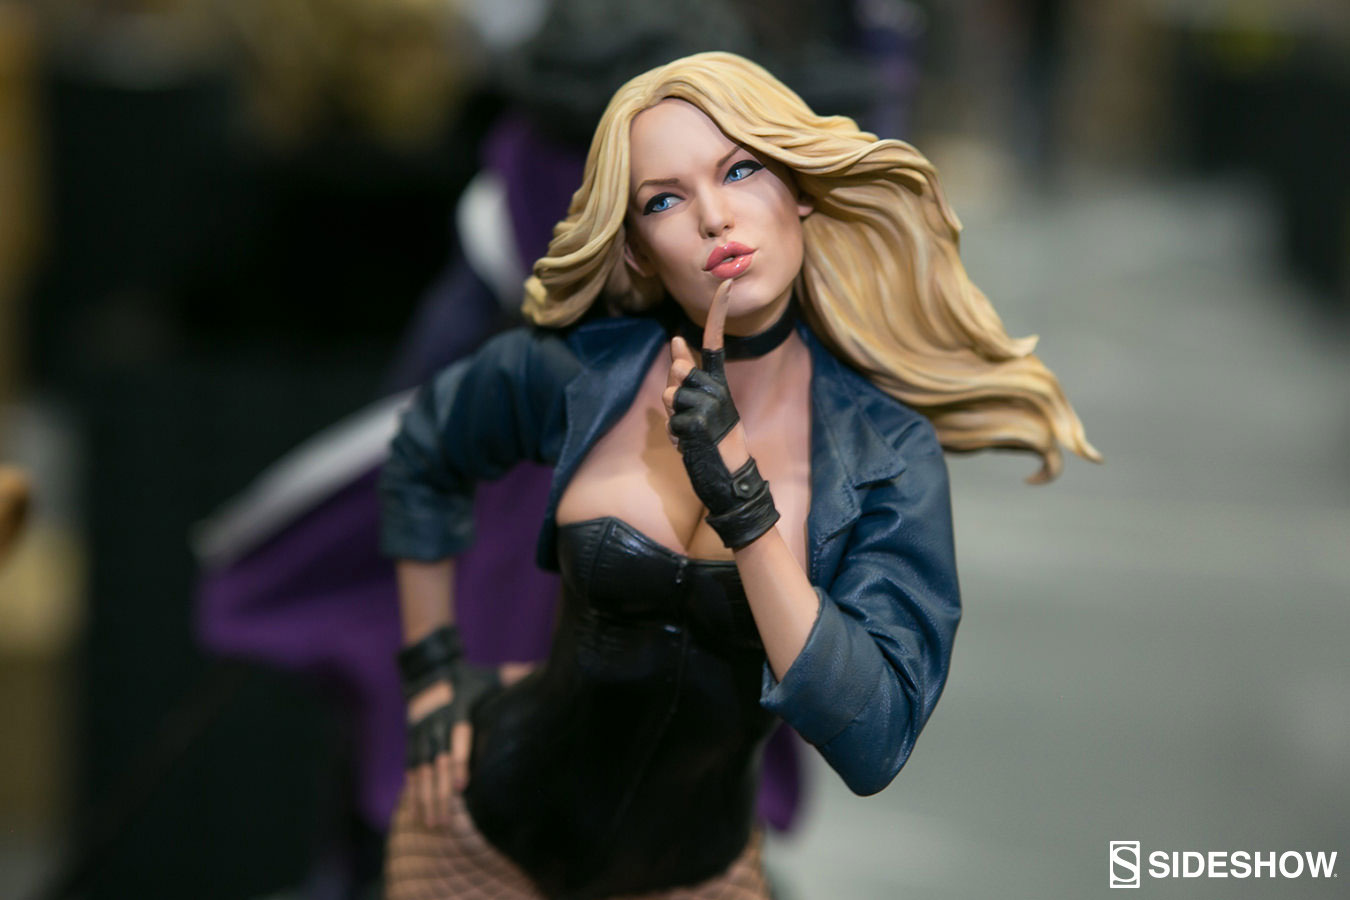 [Action Figures] Todo sobre Action Figures, Hot Toys, Sideshows - Página 7 BlackCanary-DC-SDCC2016-01-1